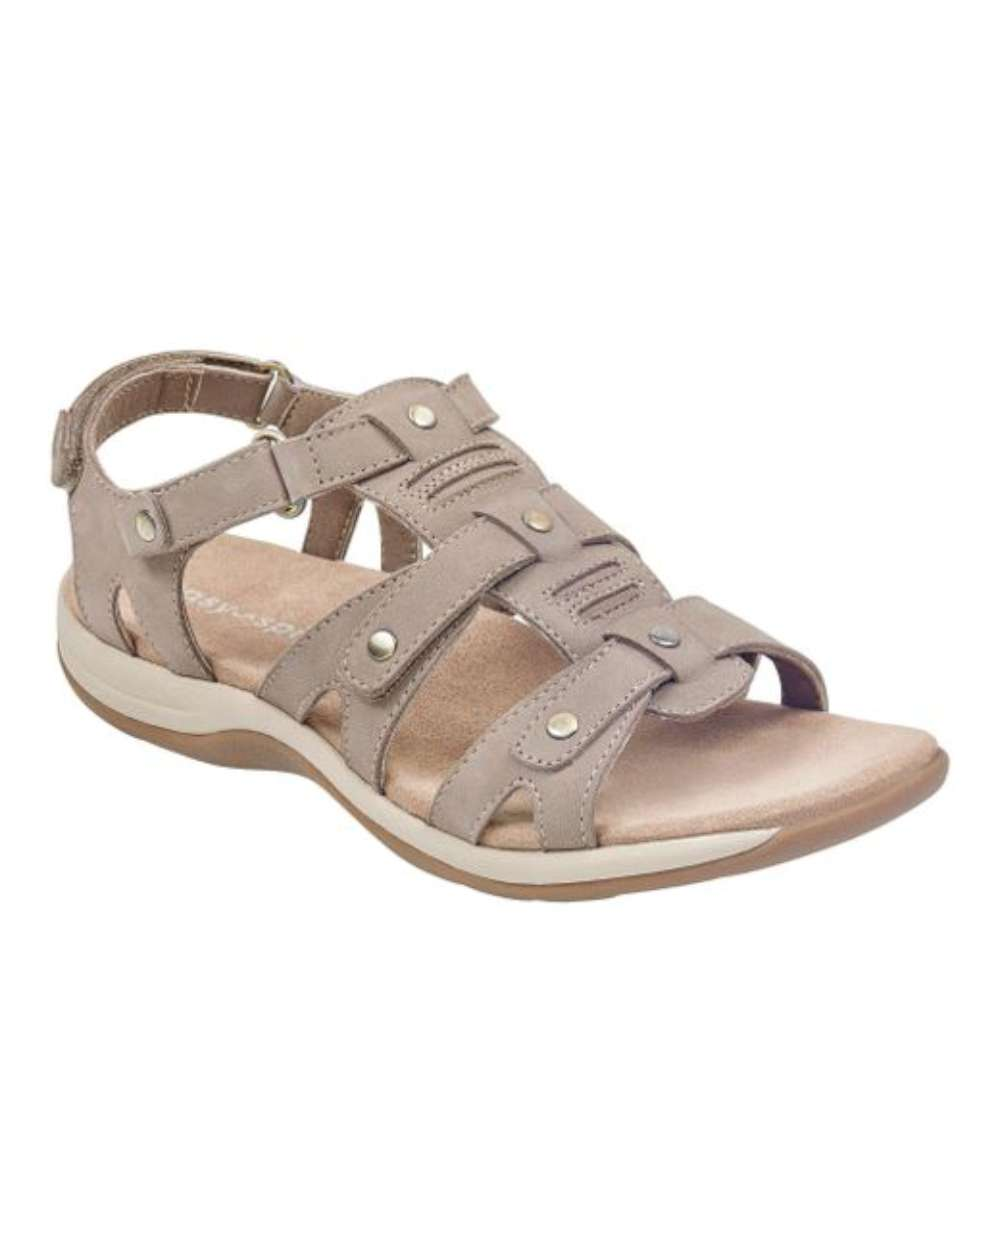 Easy Spirit femmes Sailors Leather Open Toe Casual Sport, Taupe, Taille 6.5